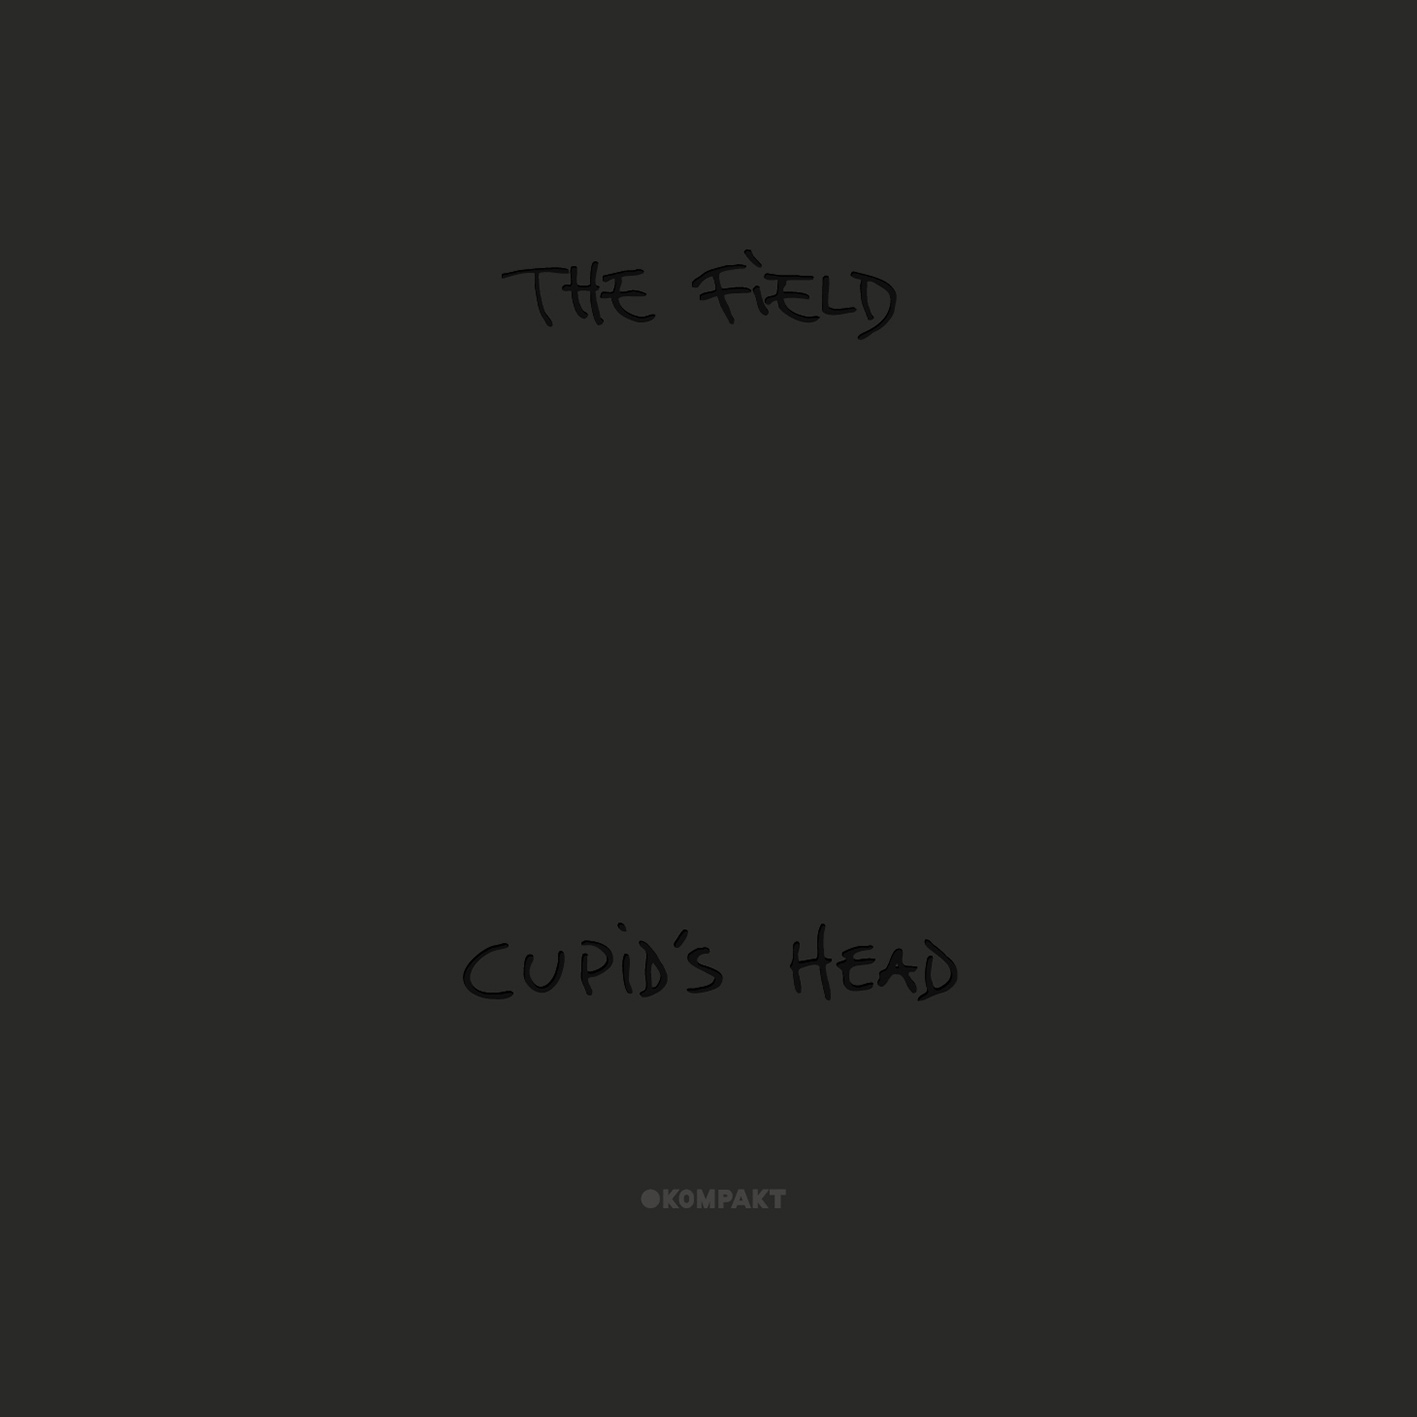 The Field Cupid's Head